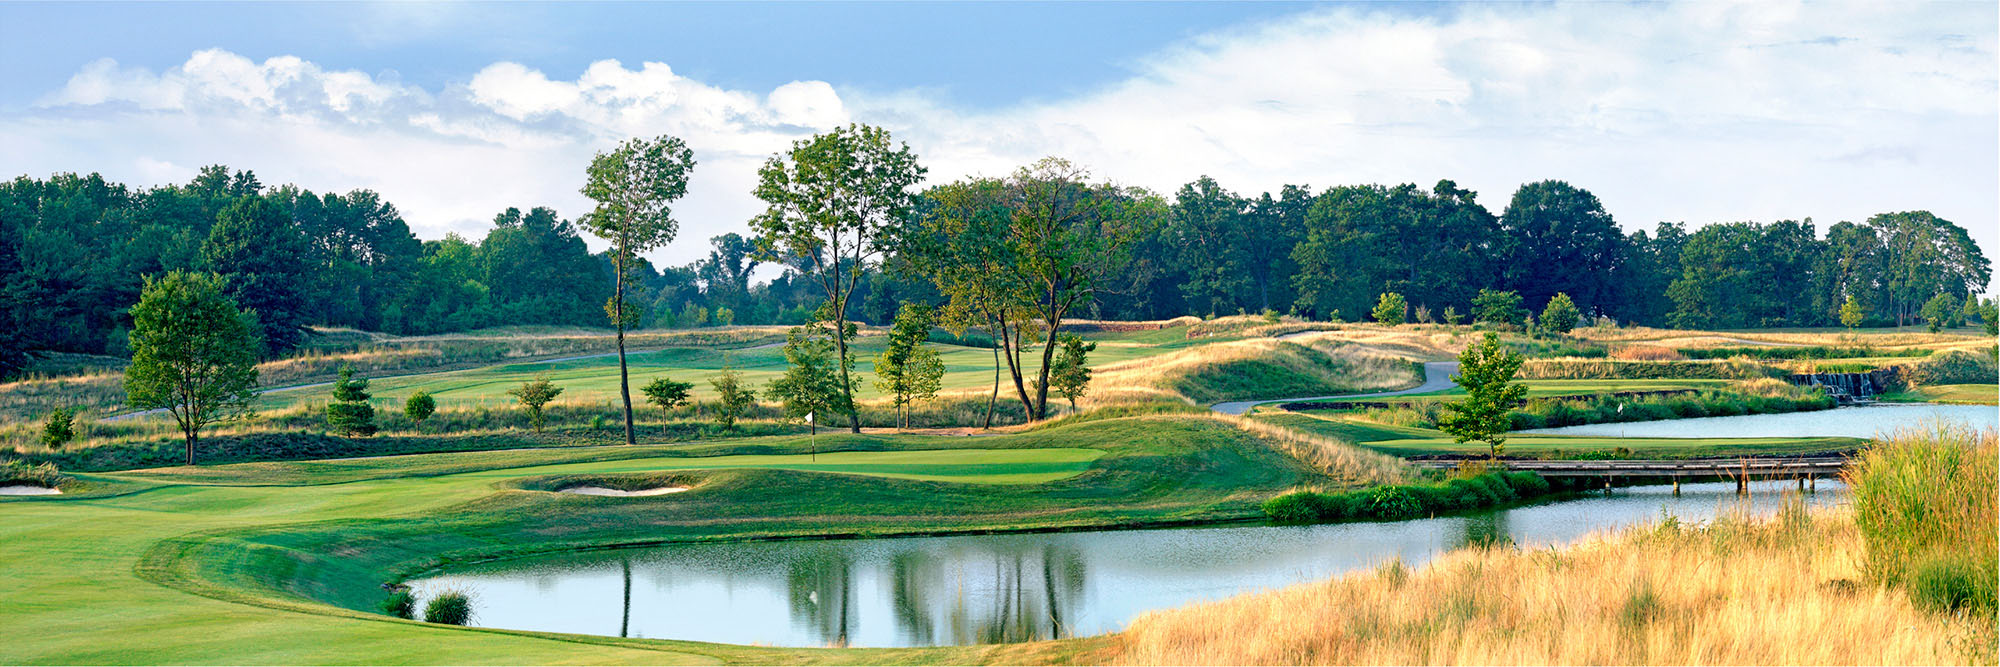 Golf Course Image - Rivercrest No. 14